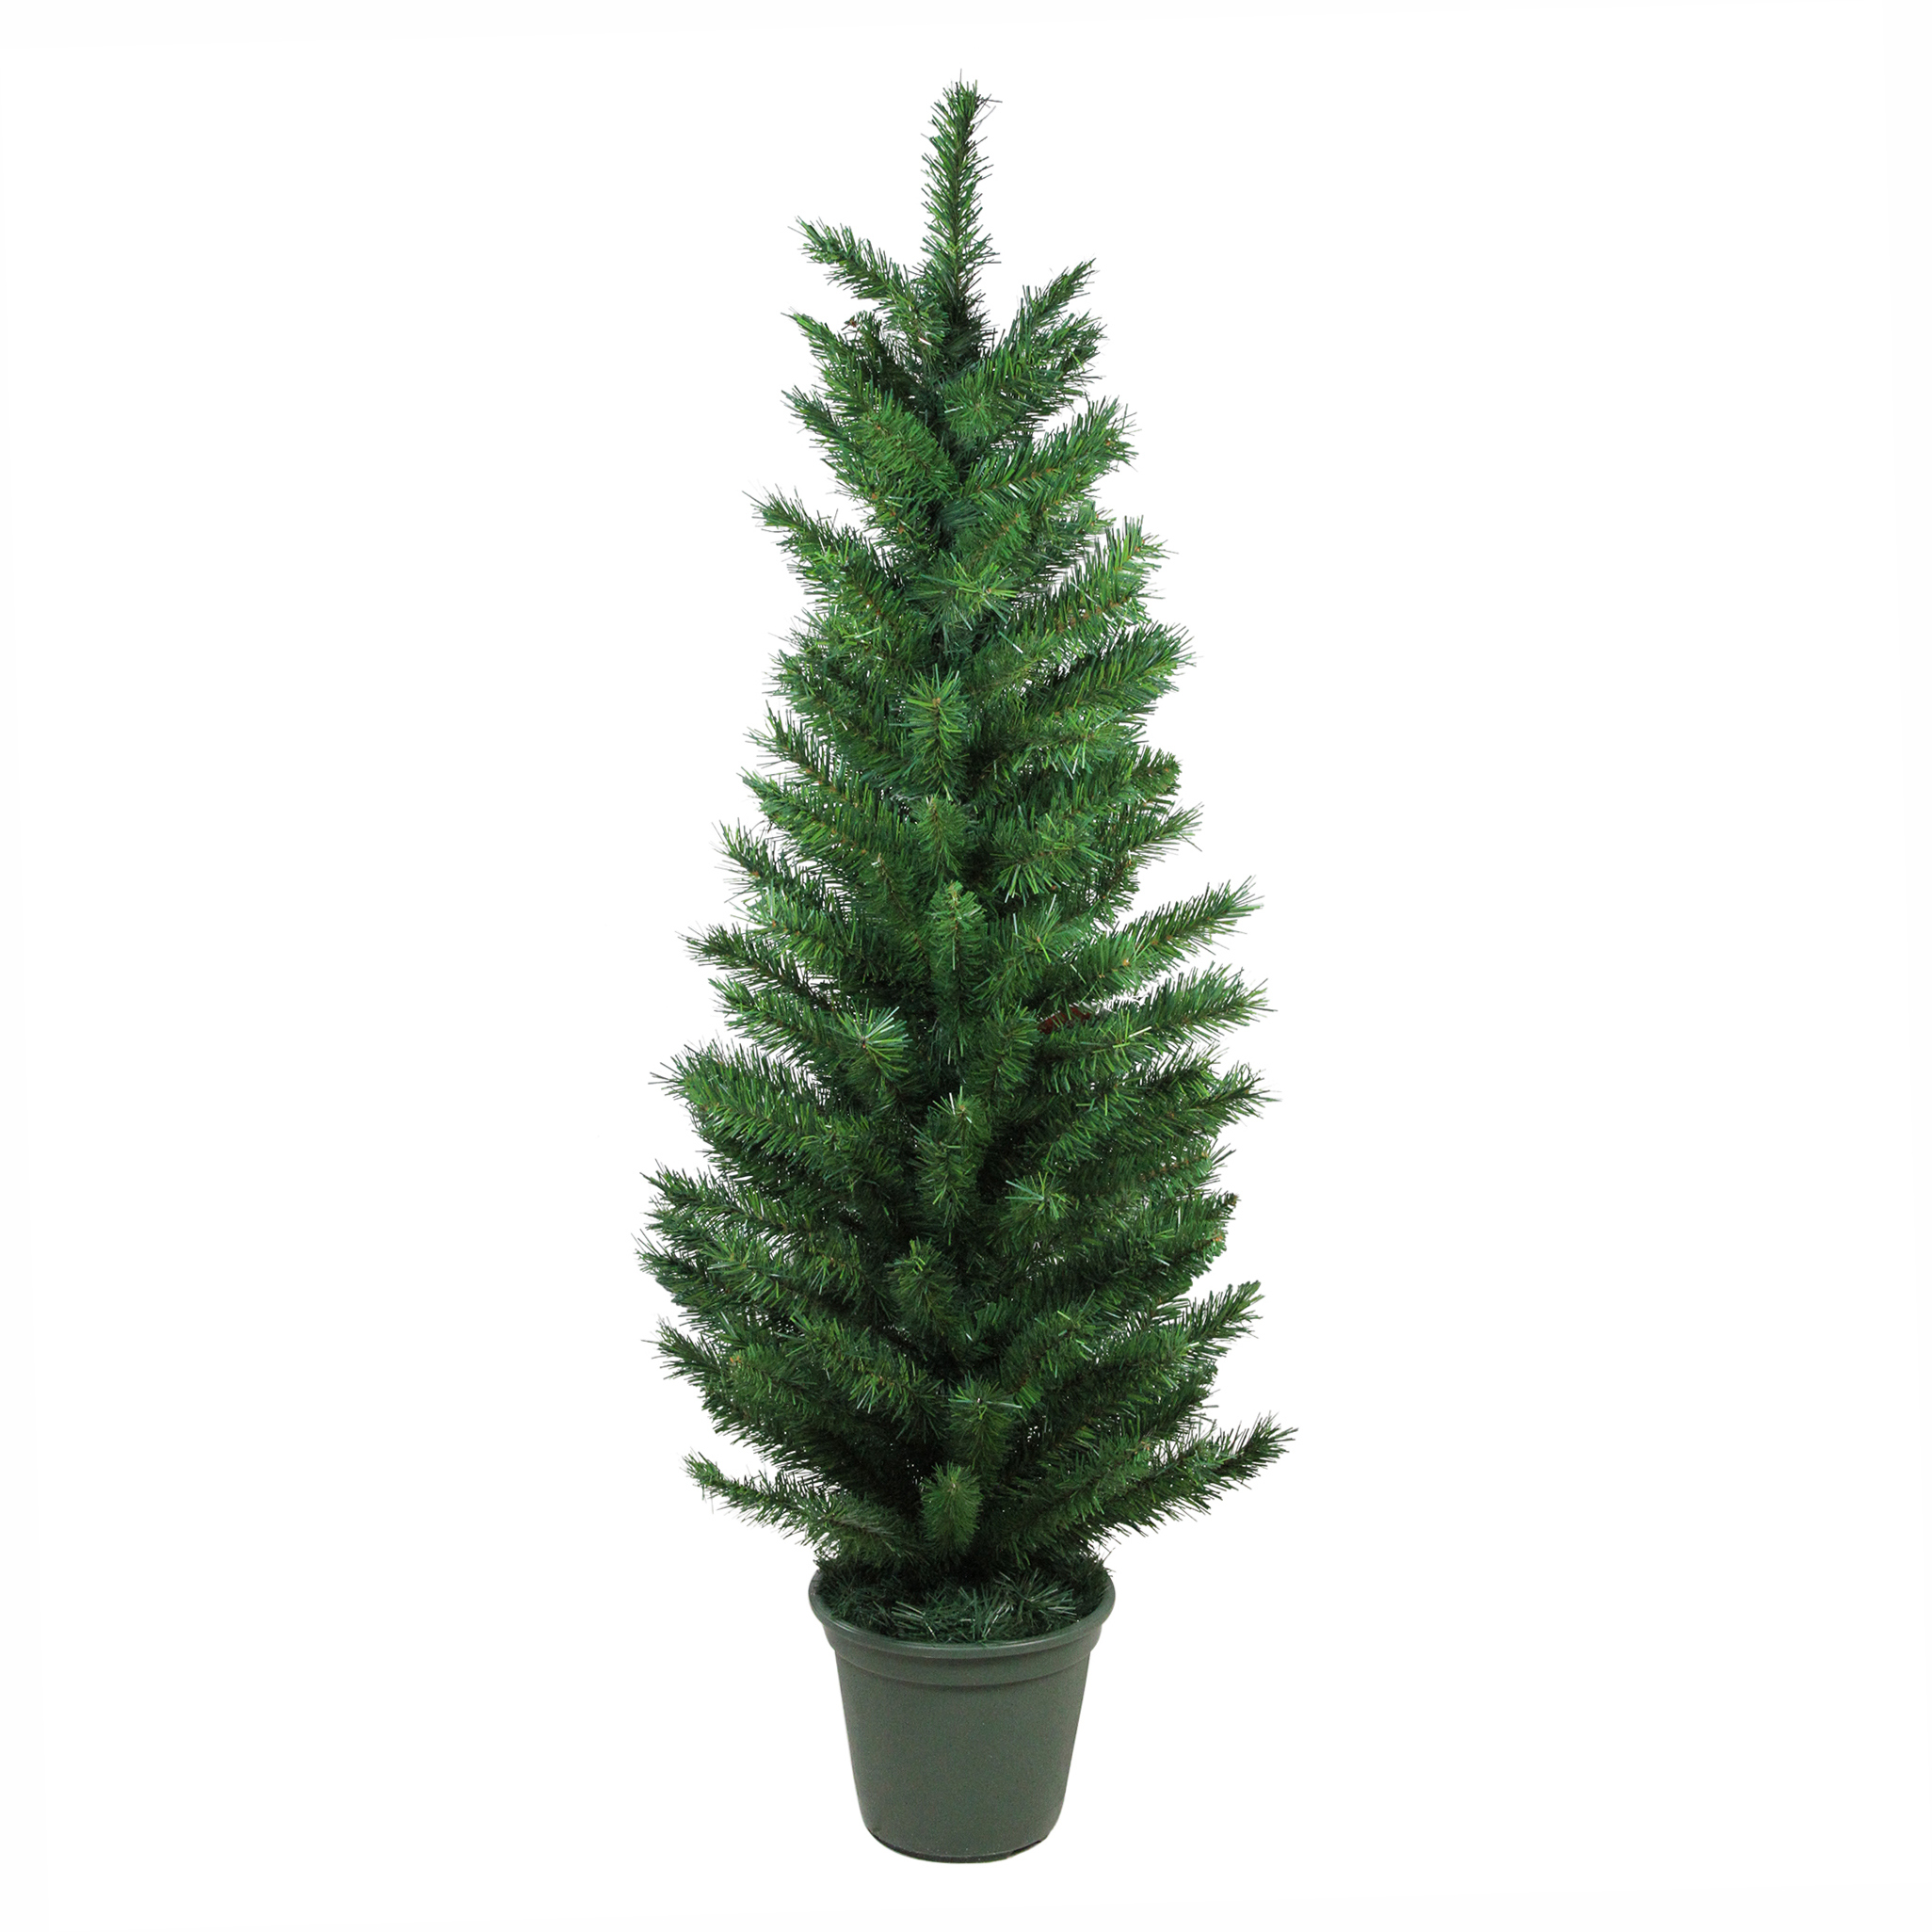 Potted Artificial Christmas Tree: 4' Potted Virginia Pine Walkway Slim Artificial Christmas